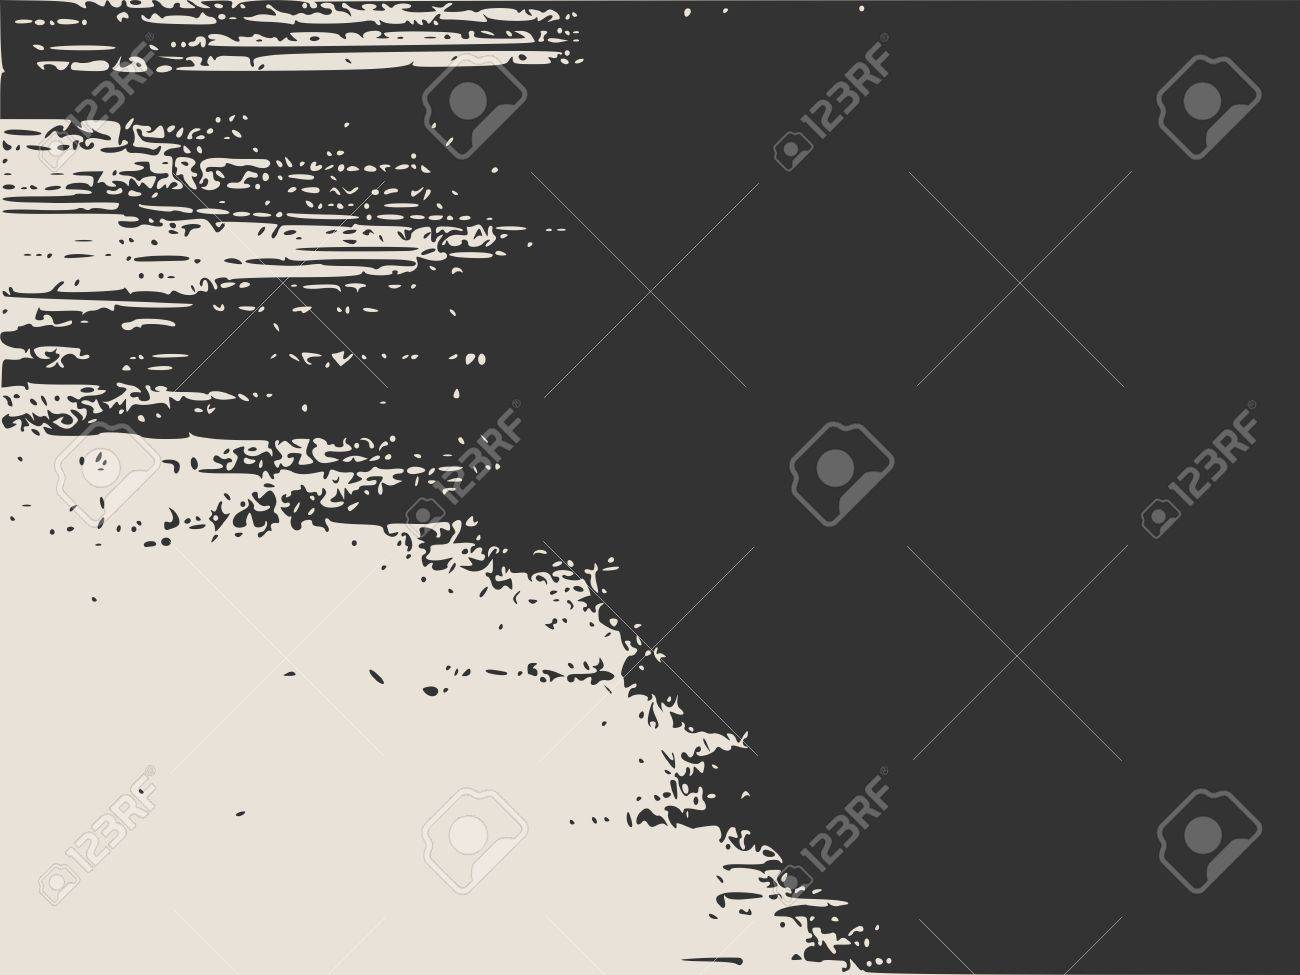 Grunge Vector Texture Template. Dark Messy Dust Overlay Distress ...